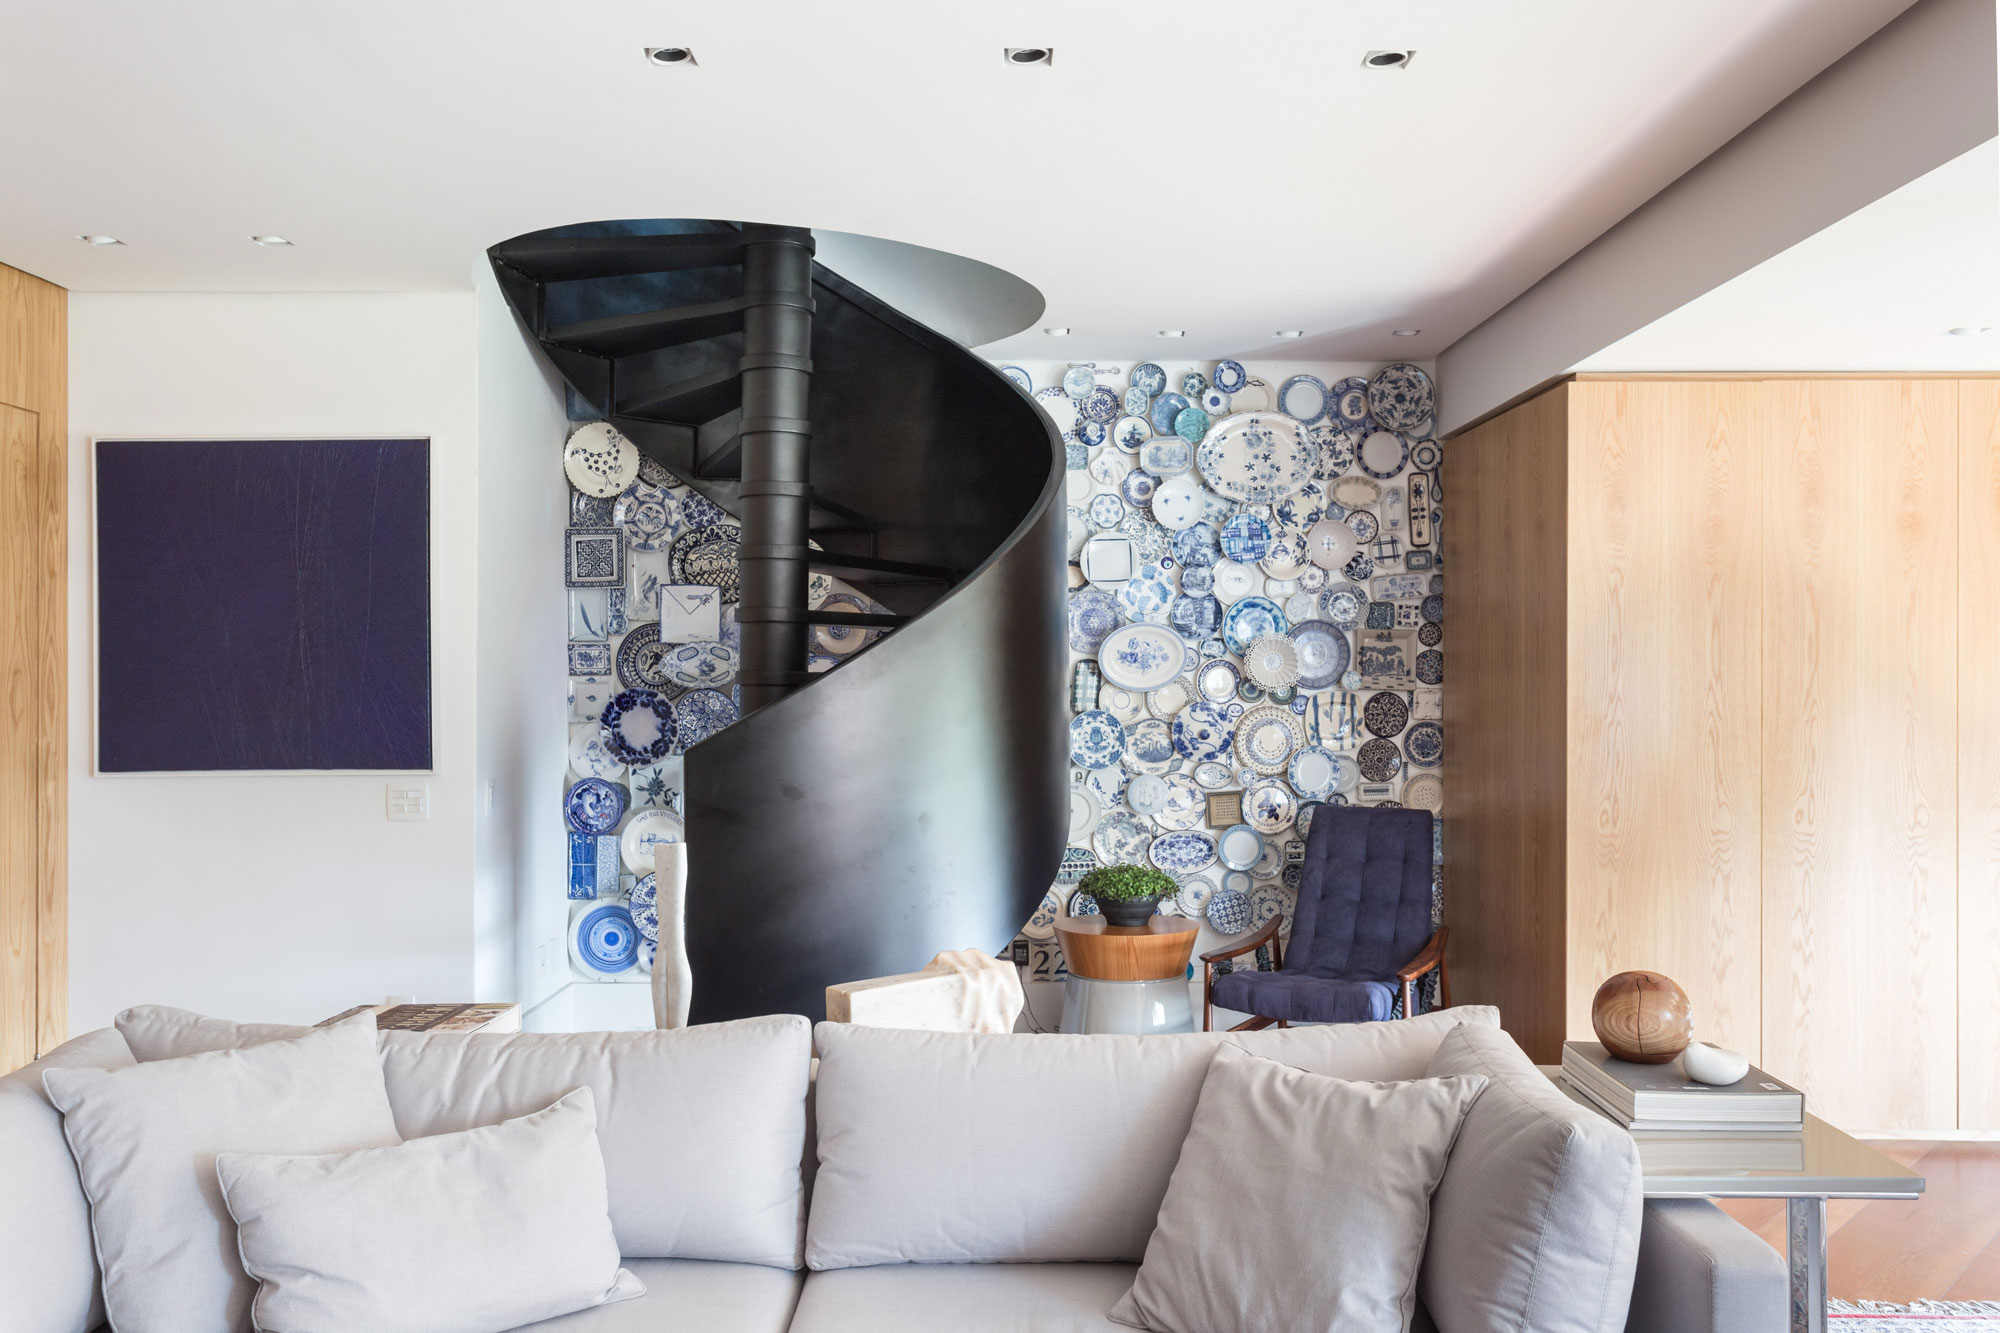 Apartment In Brazil With Blue Plates Accent Wall And Spiral Staircase